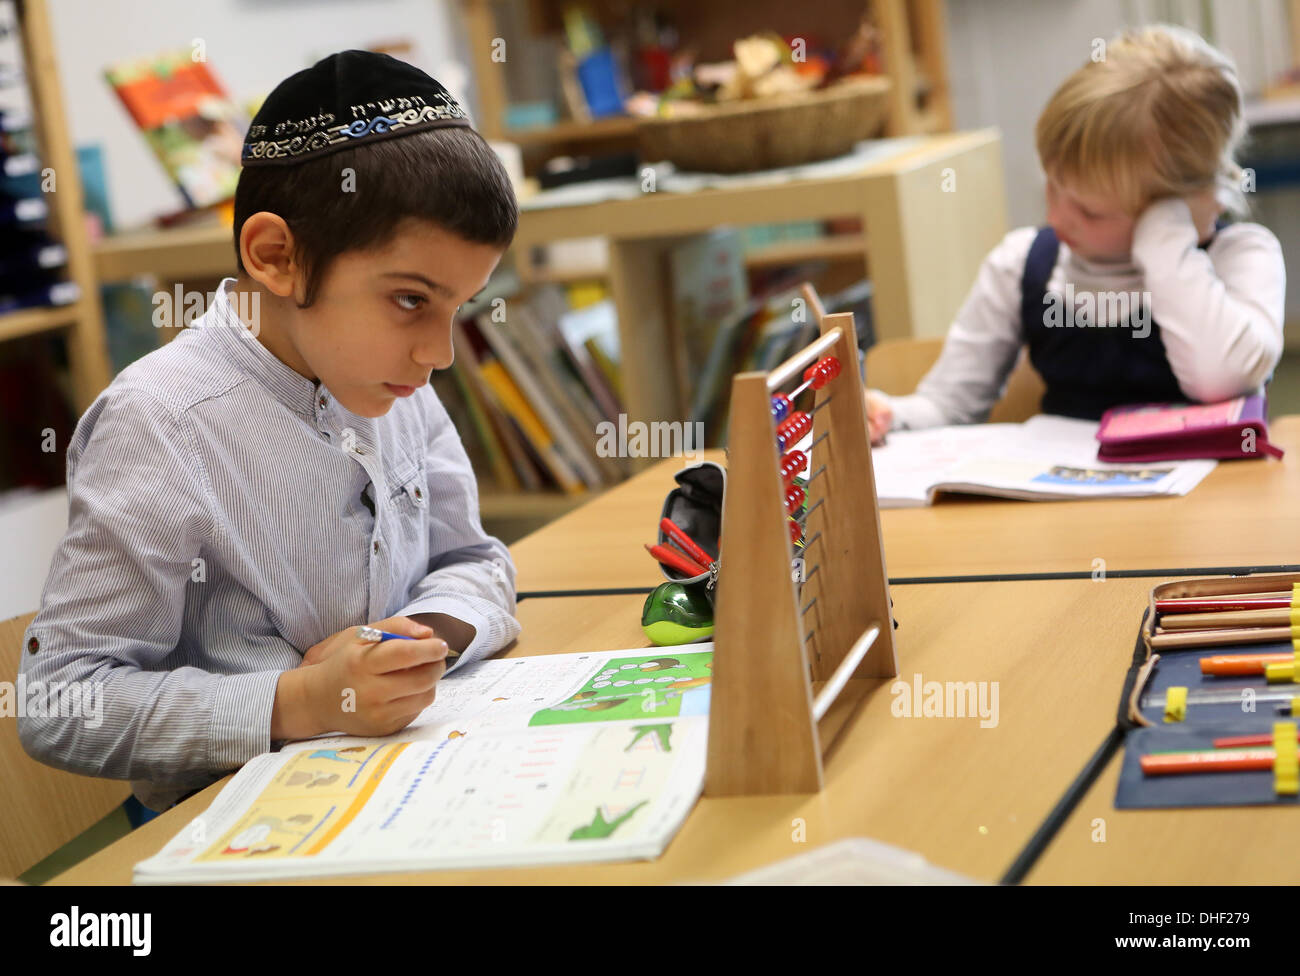 Berlin, Germany. 08th Nov, 2013. A child uses an abacus at the Or Avner Talmud-Torah Jewish seminary (yeshiva) as Rabbi David Baruch Lau, the Ashkenazi Chief Rabbi of Israel, visits one day prior to the 75th anniversary of Kristallnacht, also referred to as the Night of Broken Glass, in Berlin, Germany, on November 8, 2013. Credit:  Adam Berry/Alamy Live News - Stock Image